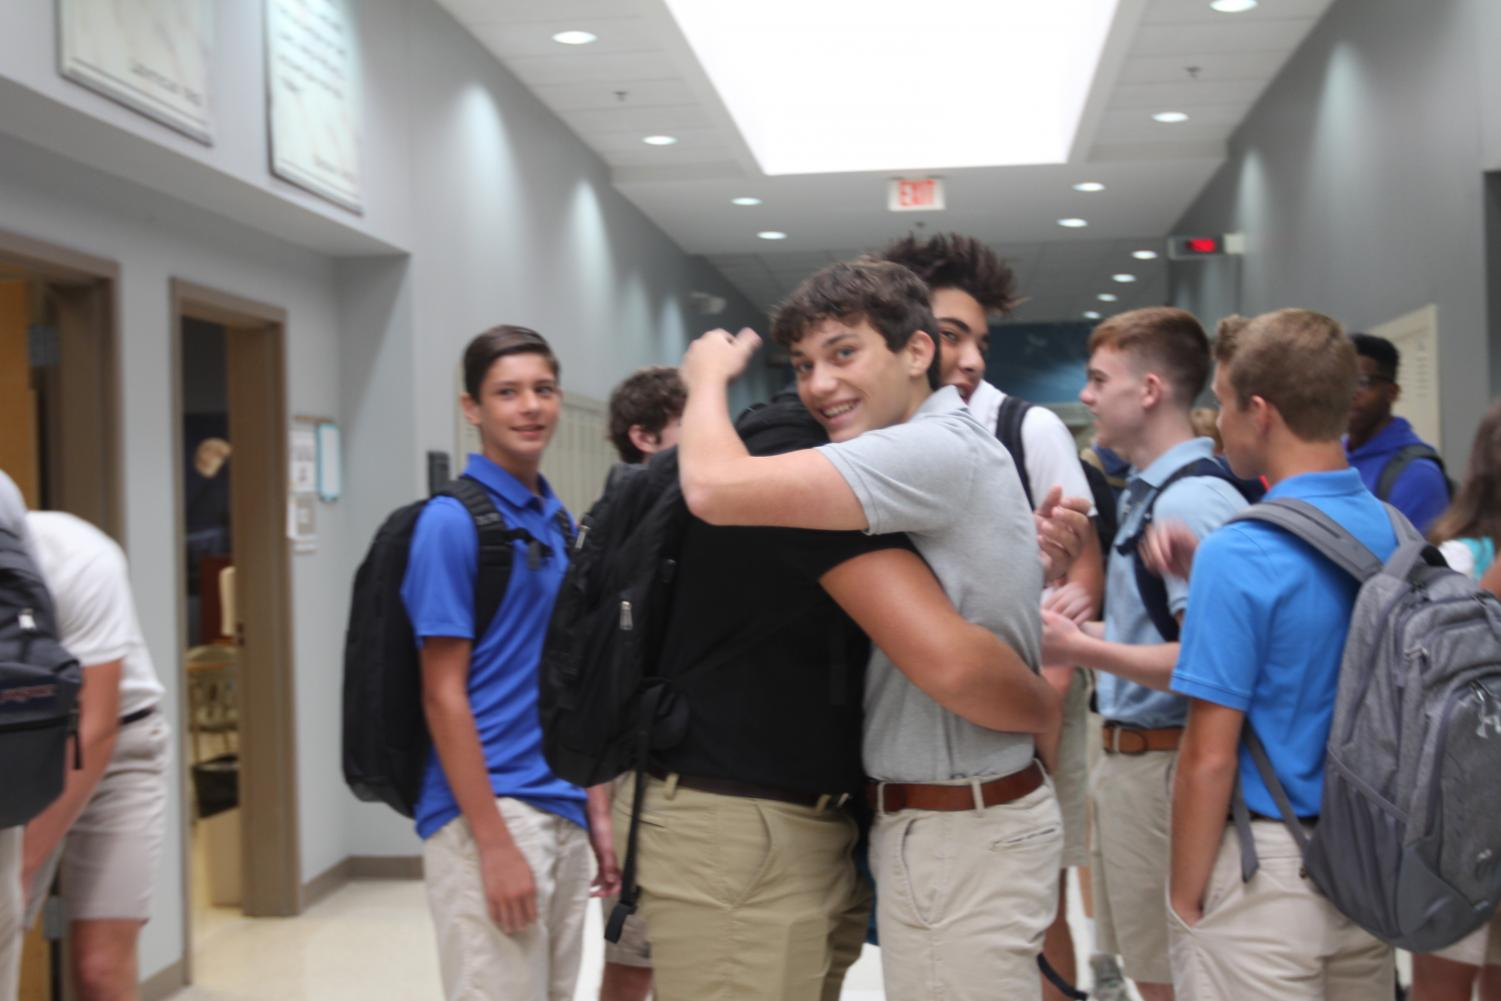 Grant Vaught, 10, and Mac Crosbie, 10, welcome each other to school on the first day.